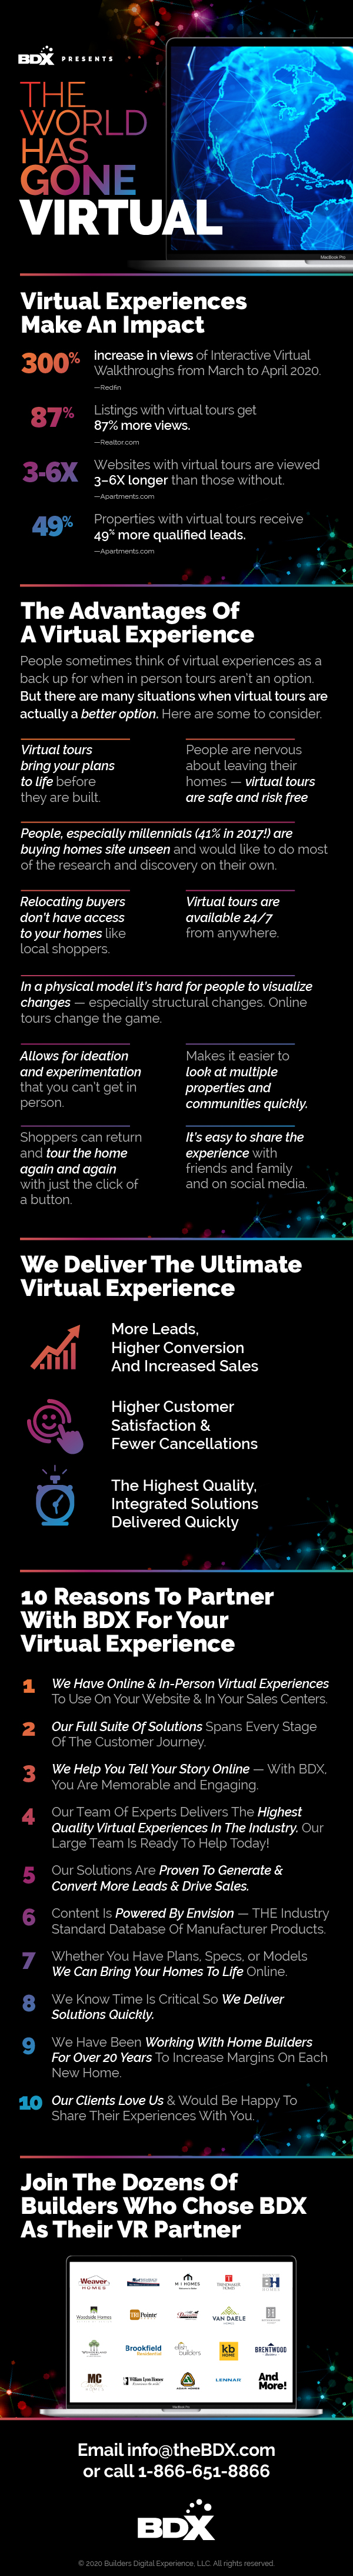 Infographic Summarizes The Top Reasons For Homebuilders To Invest In Virtual Experiences